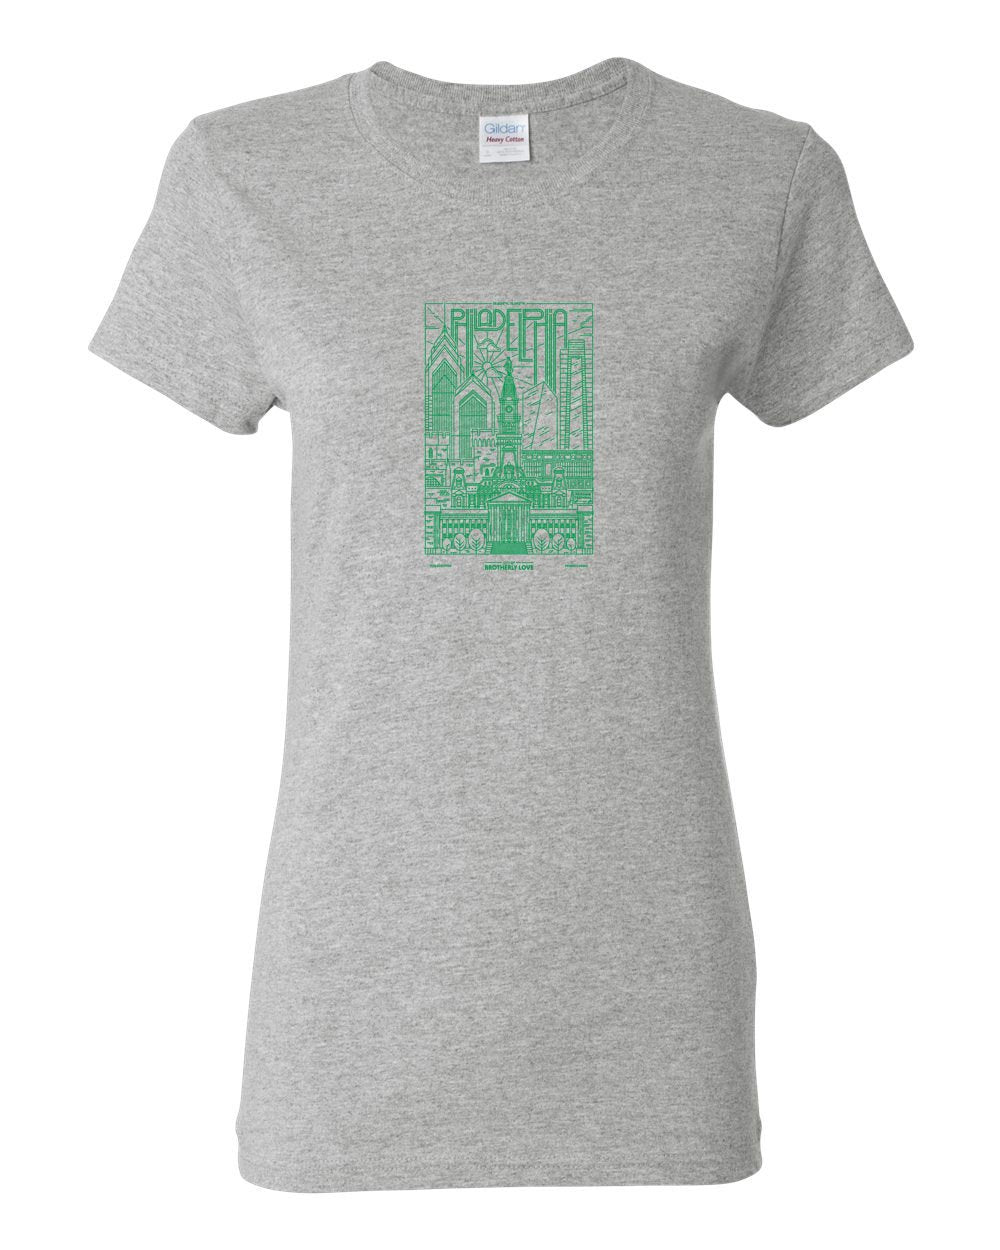 Philadelphia Skyline V2 (Green Ink) LADIES Missy-Fit T-Shirt